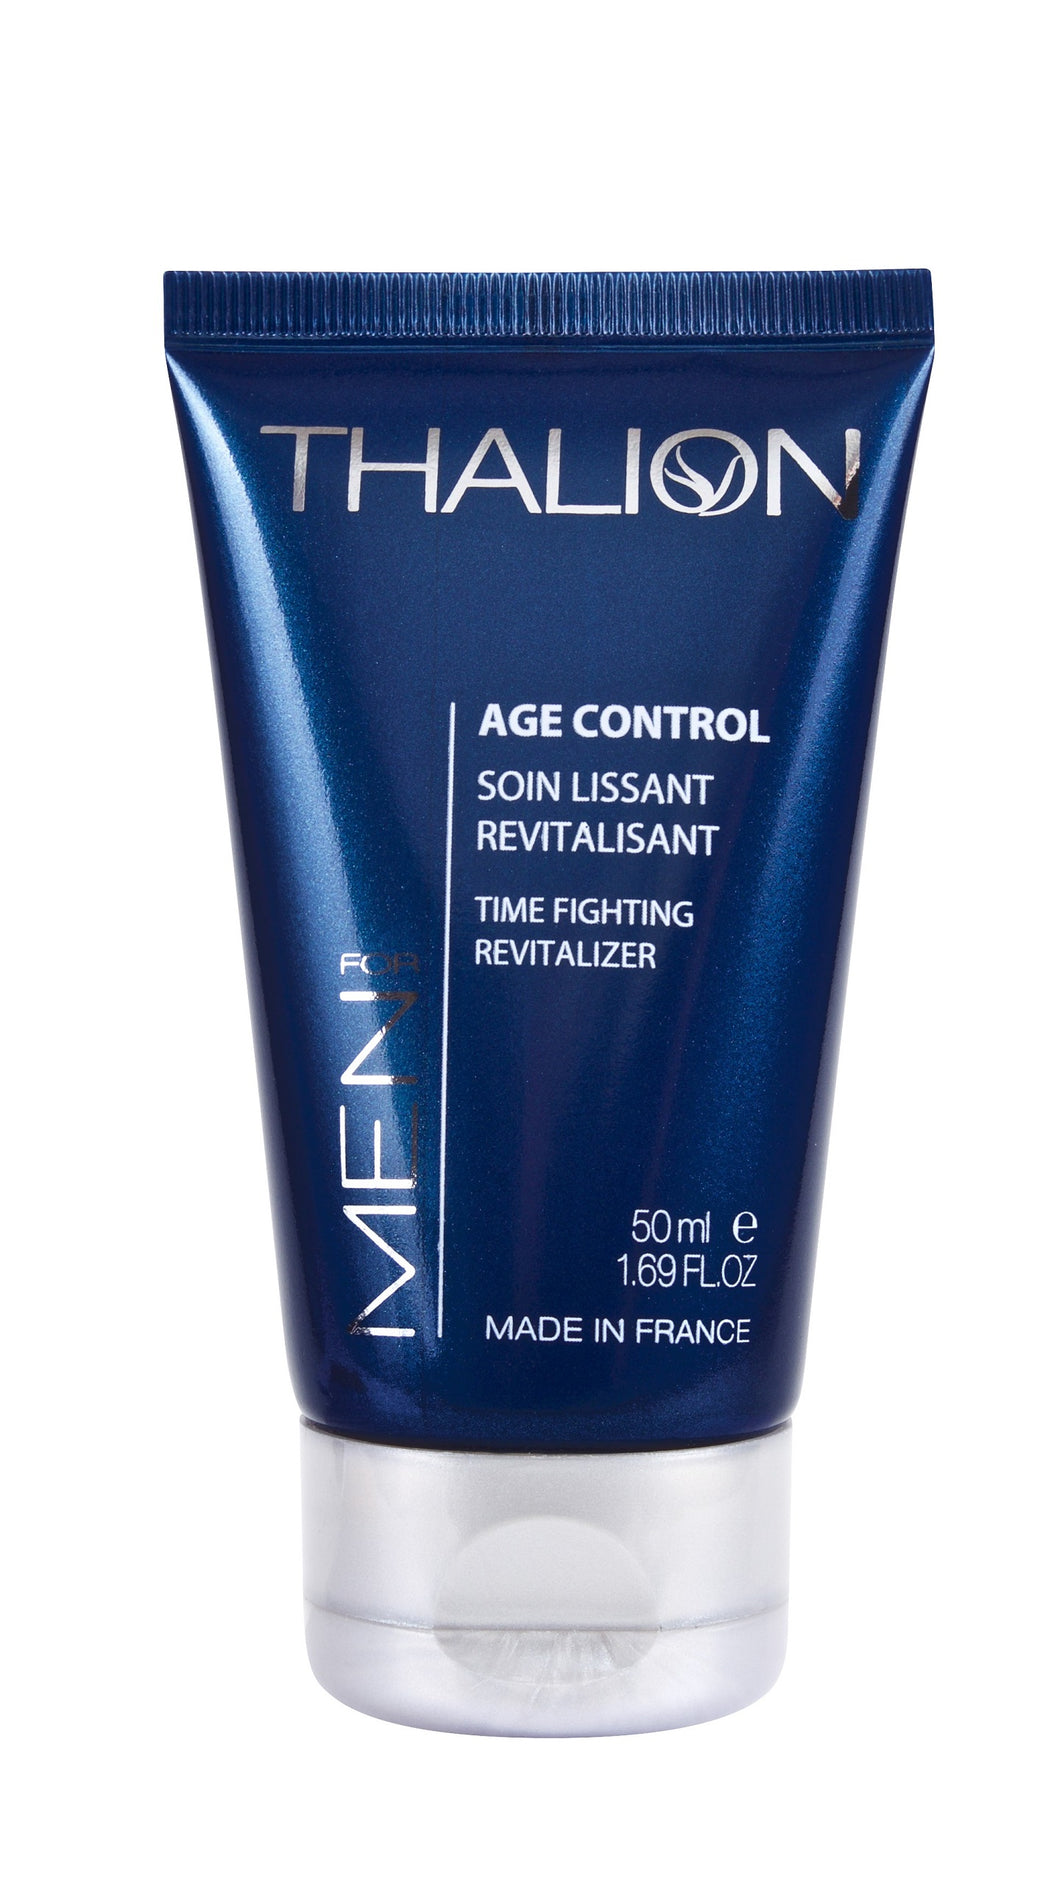 Age Control : Soin Lissant Revitalisant - Thalion